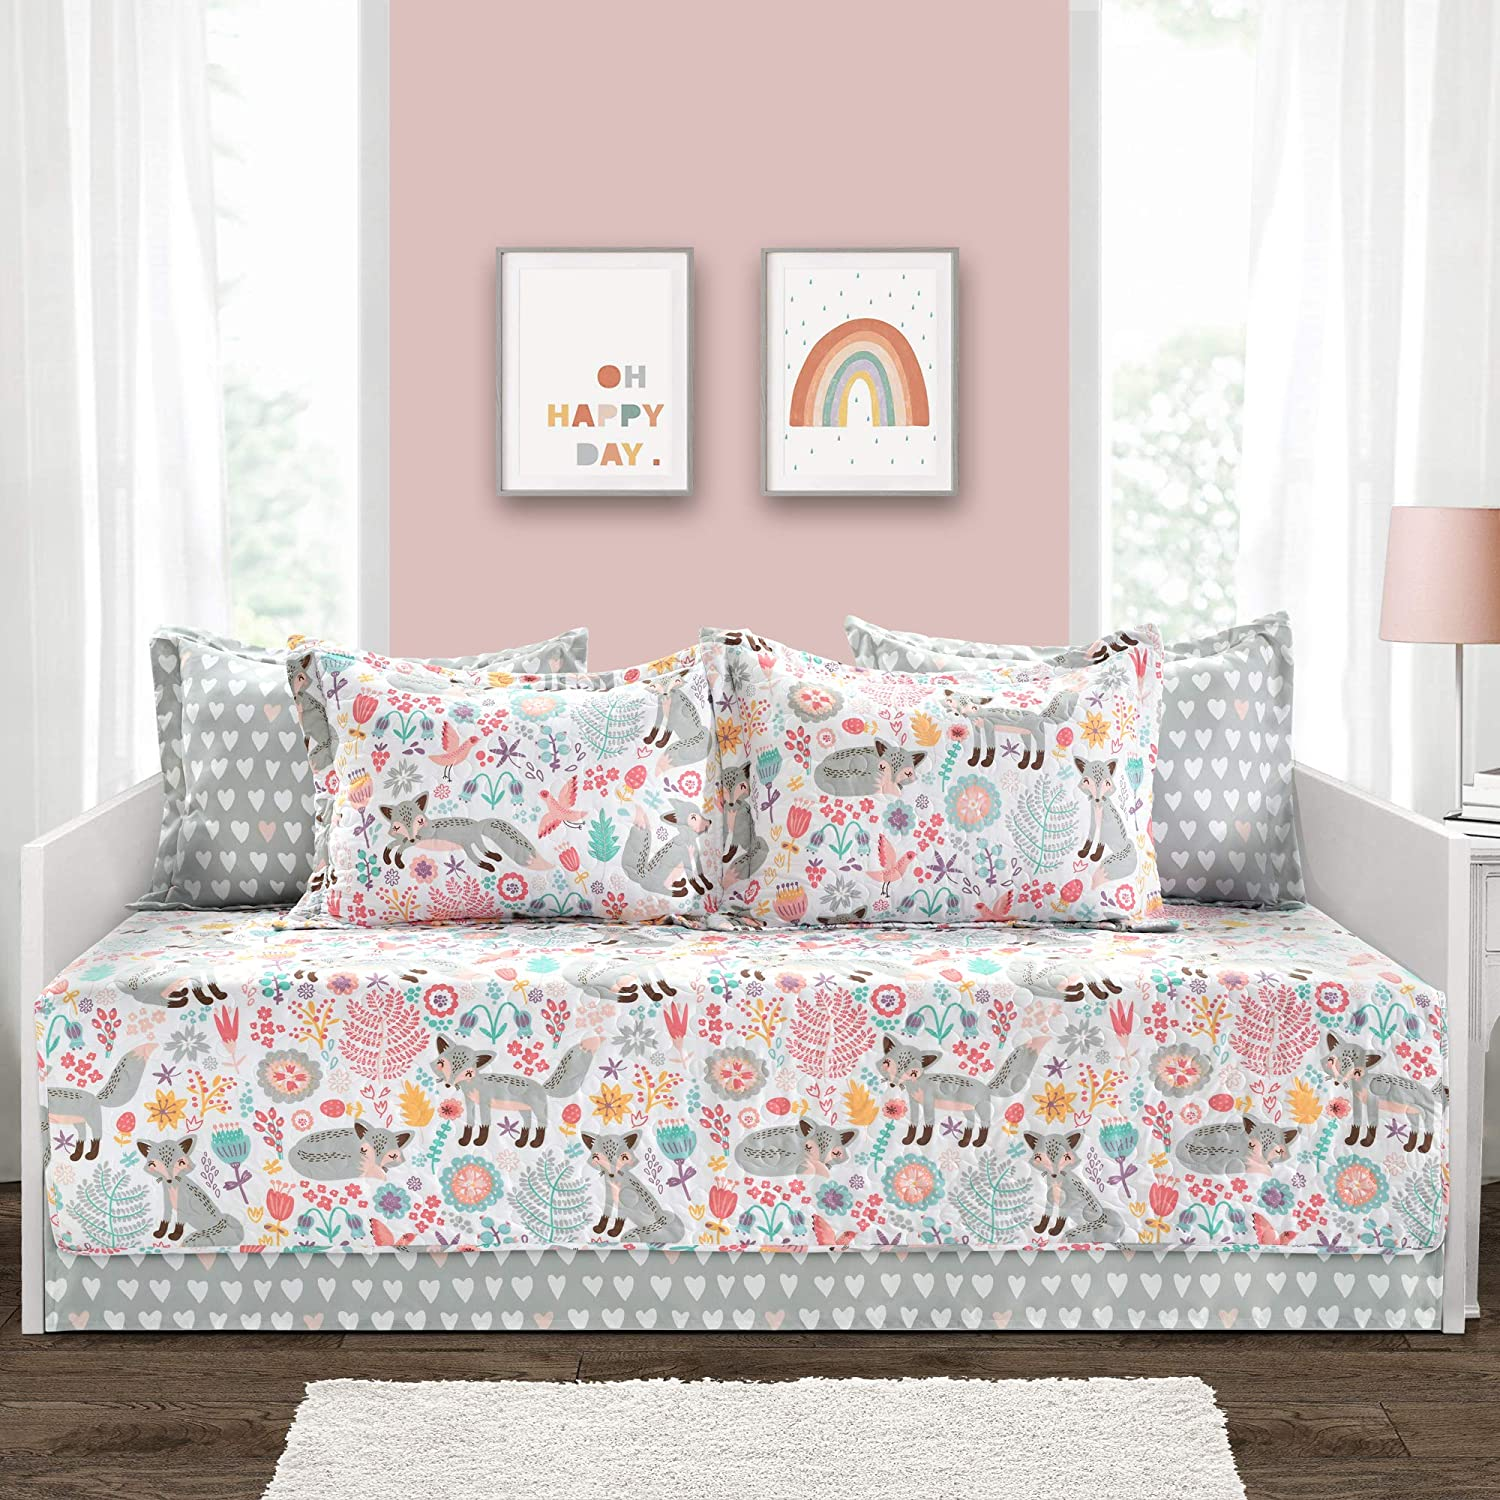 "Lush Decor Pixie Fox 6 Piece Daybed Cover Set, Gray & Pink, 39""x75"""